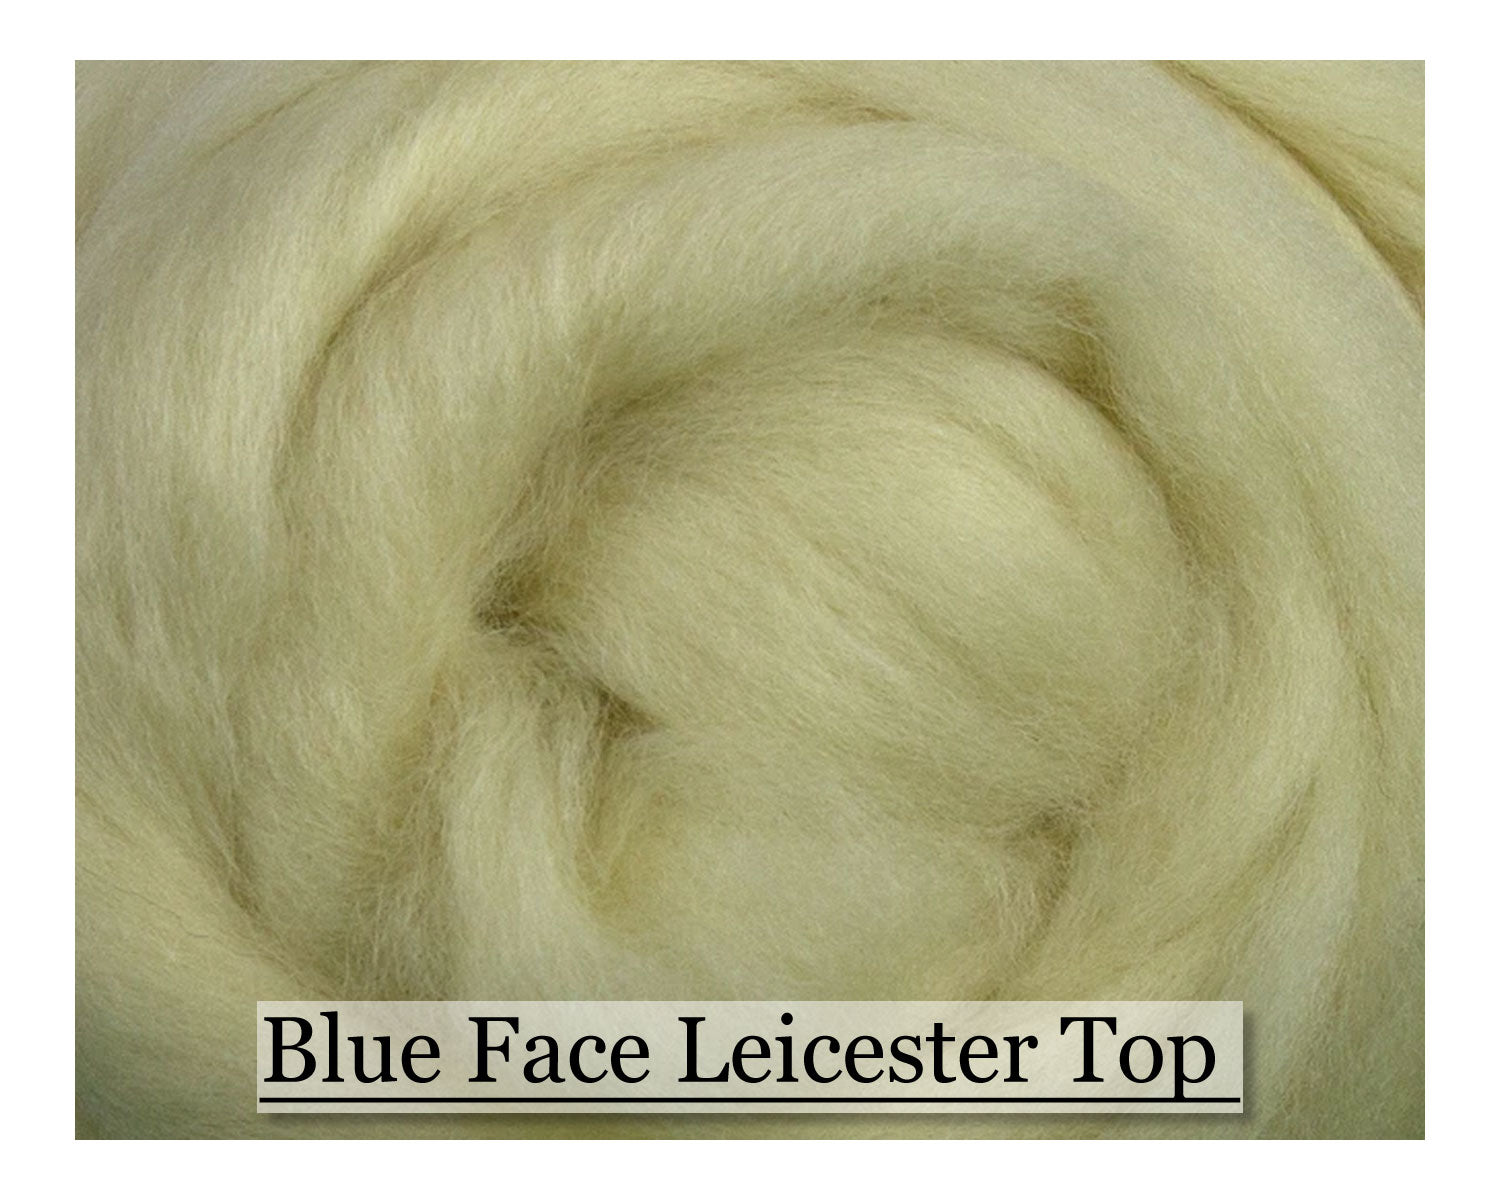 Blue Faced Leicester Top - 1, 2 or 4 oz size